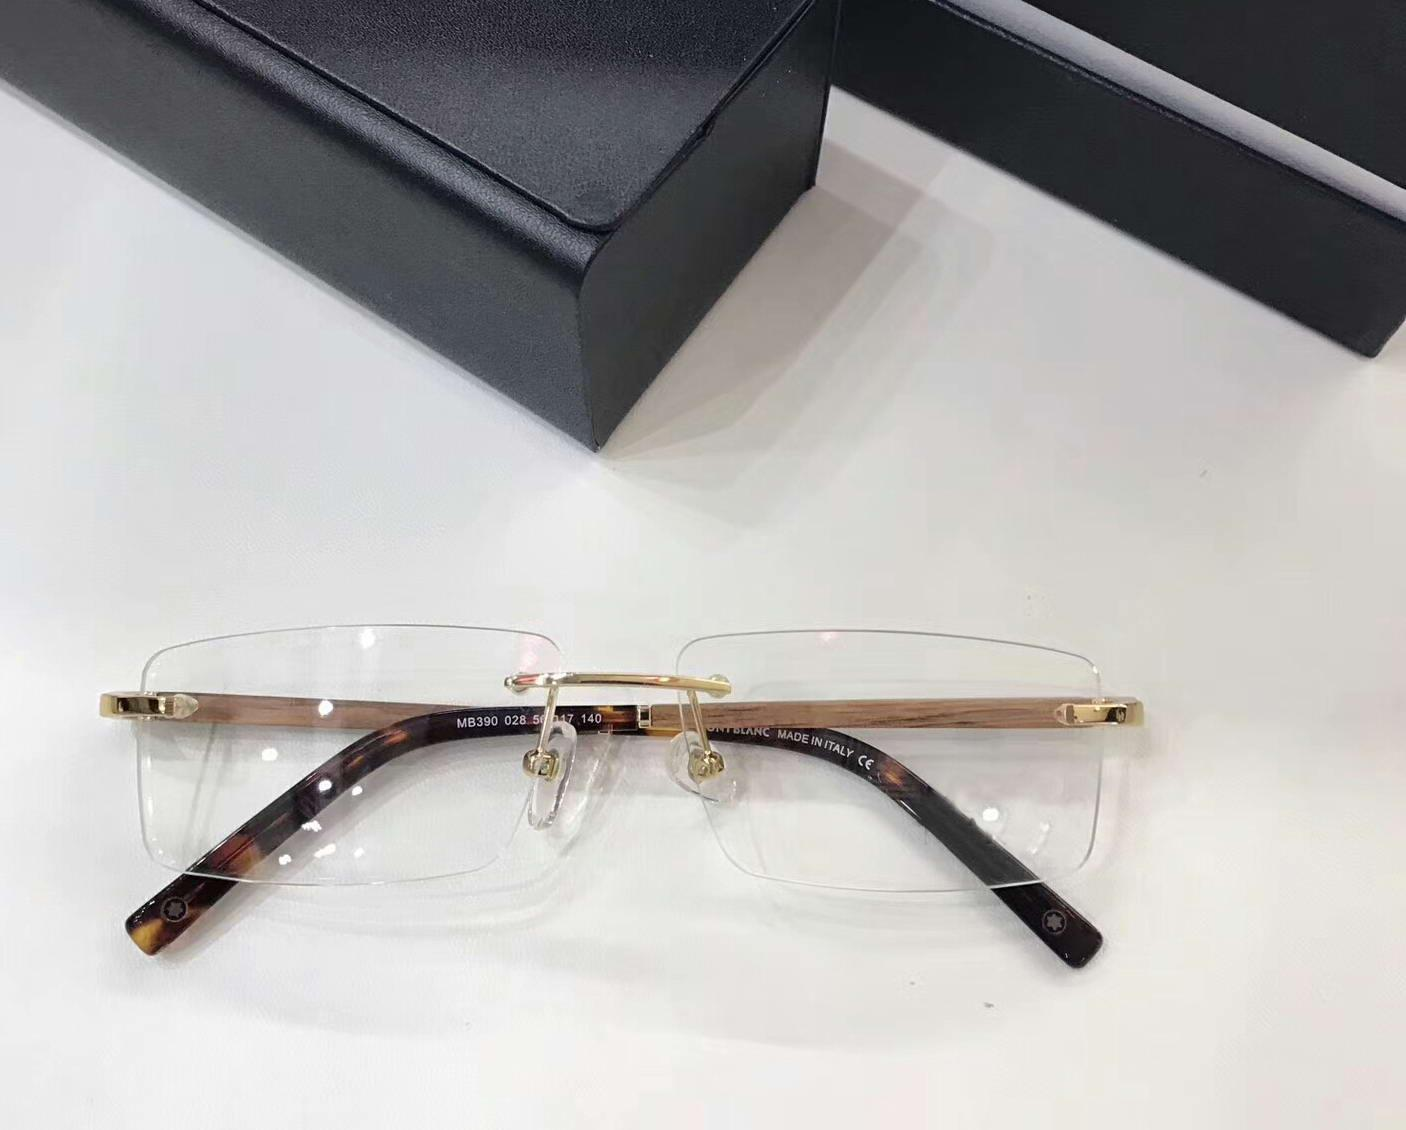 34ad5dbed8 Men Black Gold Rimless Wooden Temples Glasses Eyeglasses Frames Eyewear  56mm 17 140 Brand New with Box Online with  65.87 Piece on Baiyu168 s Store  ...